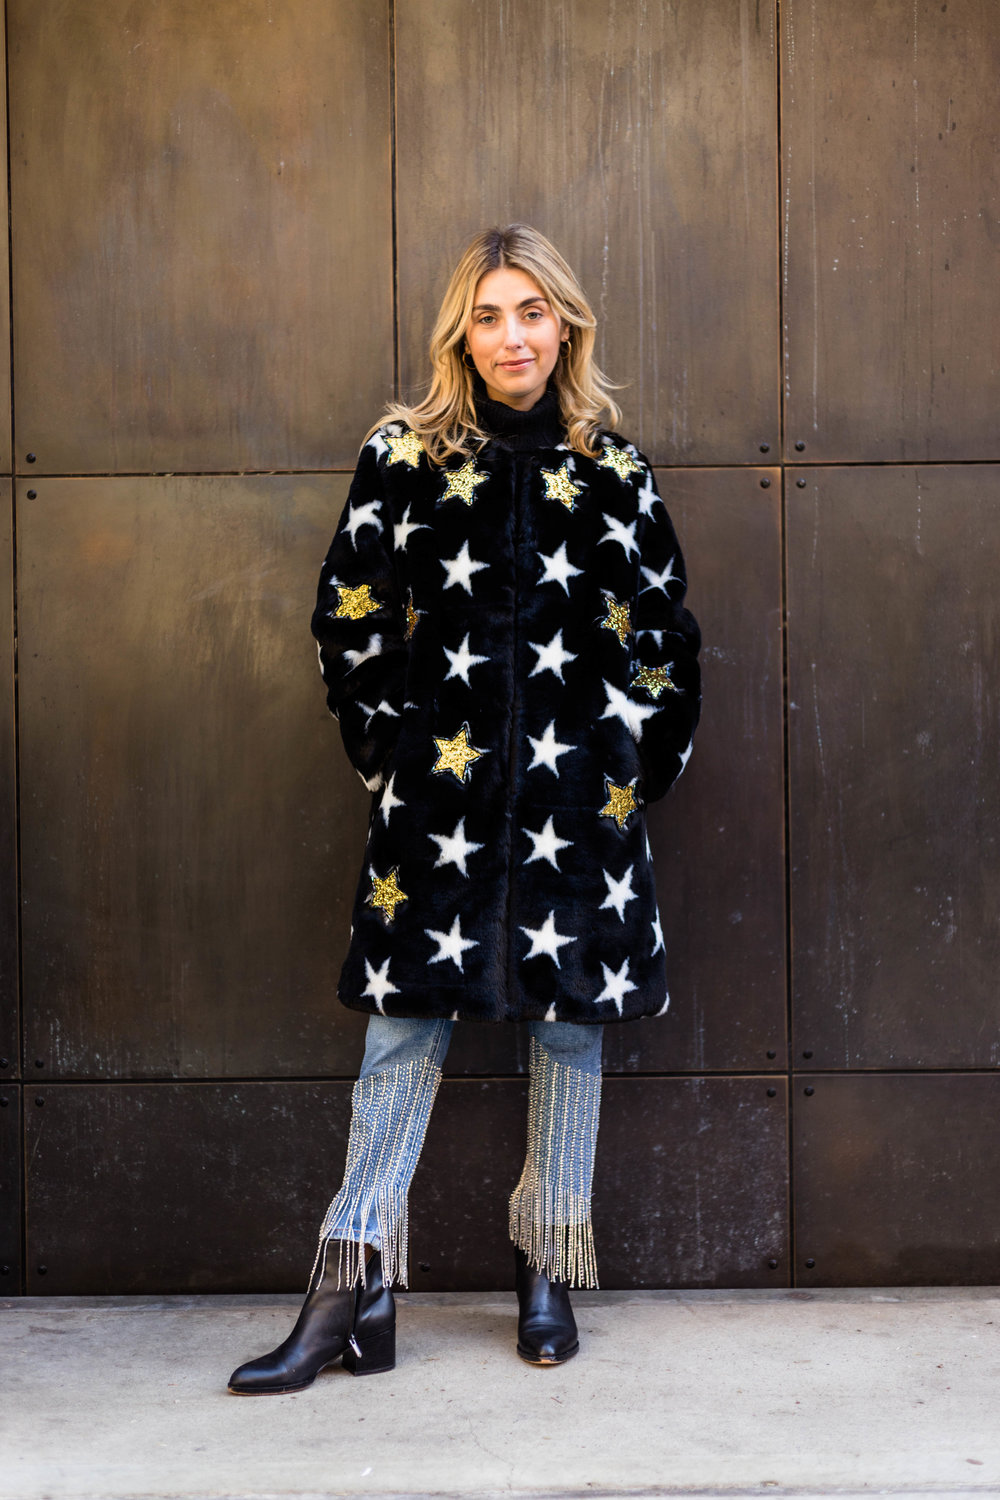 CHARLOTTE BICKLEY YIN 2MY YANG SISTER FASHION BLOGGERS NYC SEEING STARS POST